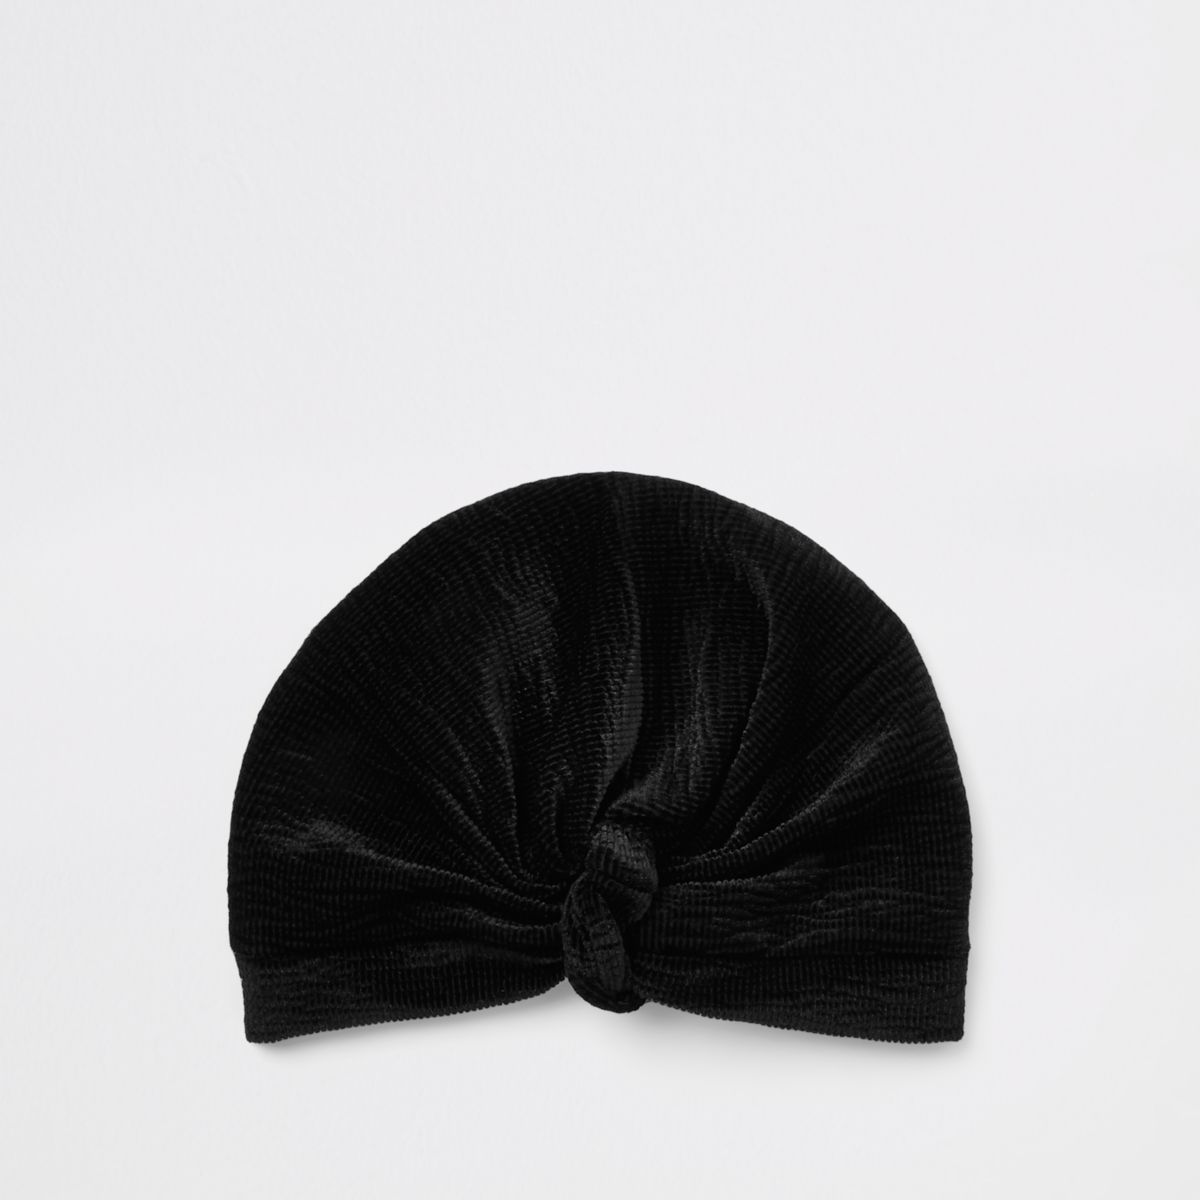 Black plisse velvet twist turban headband